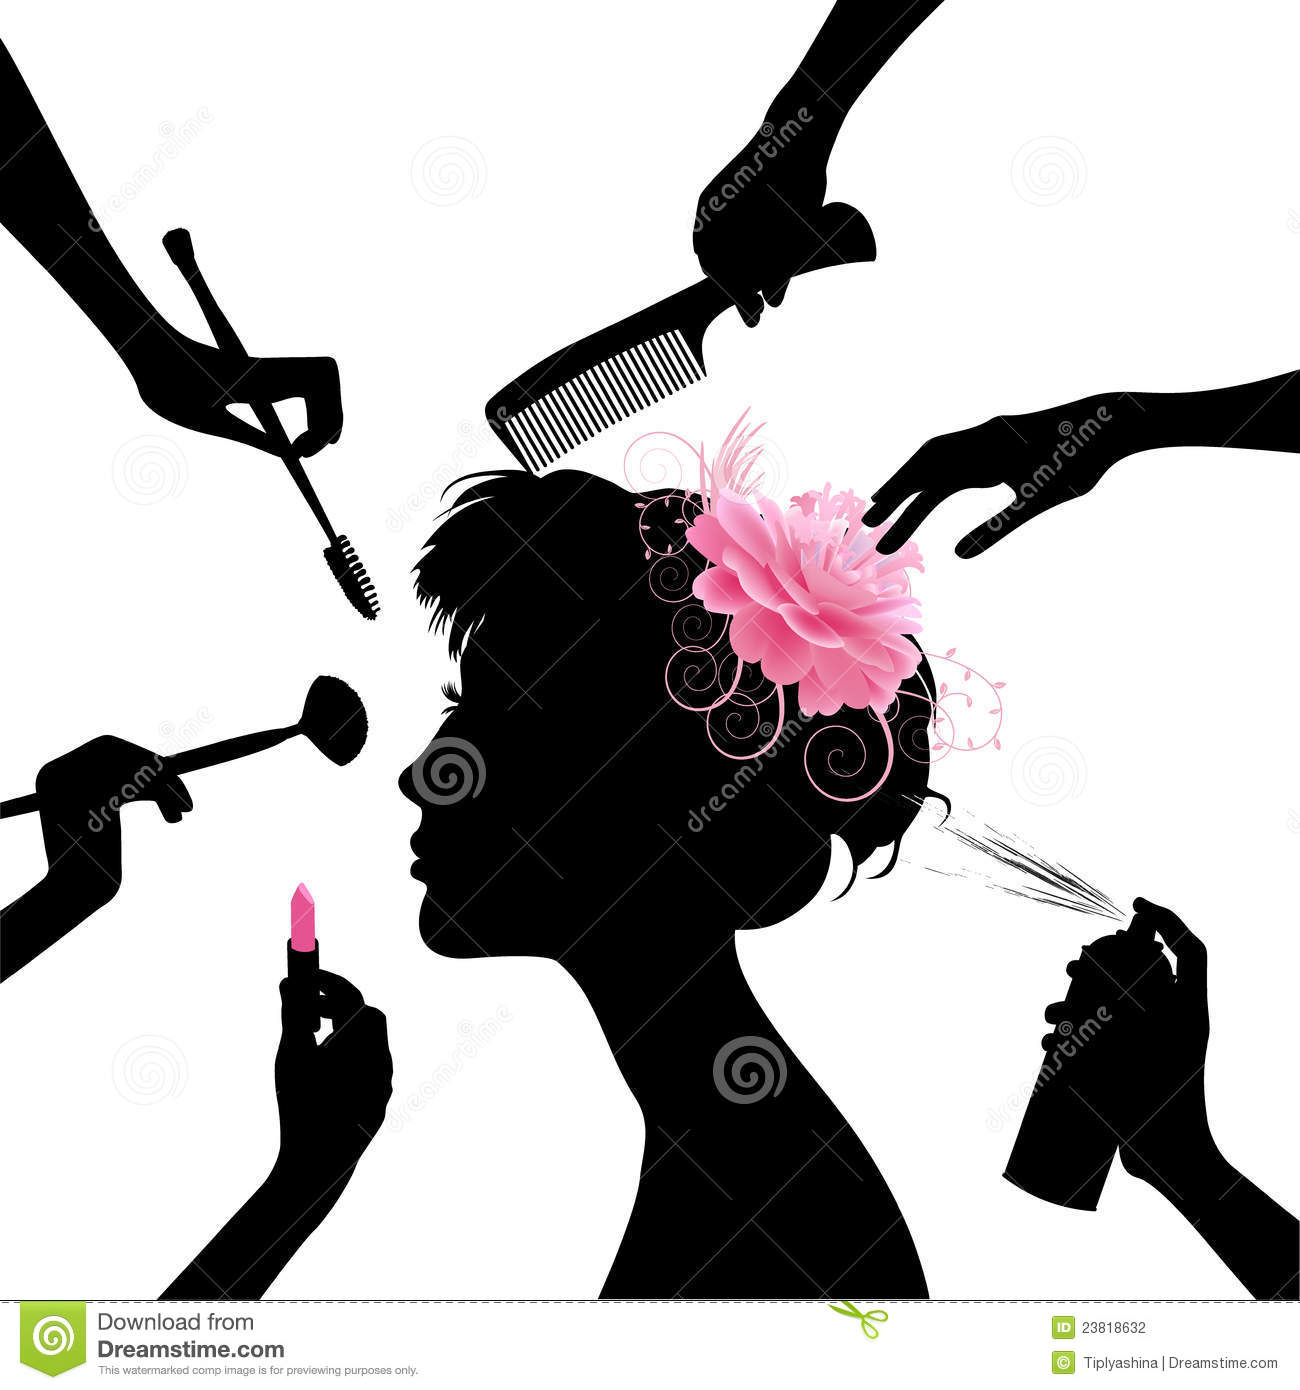 Woman In A Beauty Salon. Stock Vector. Illustration Of